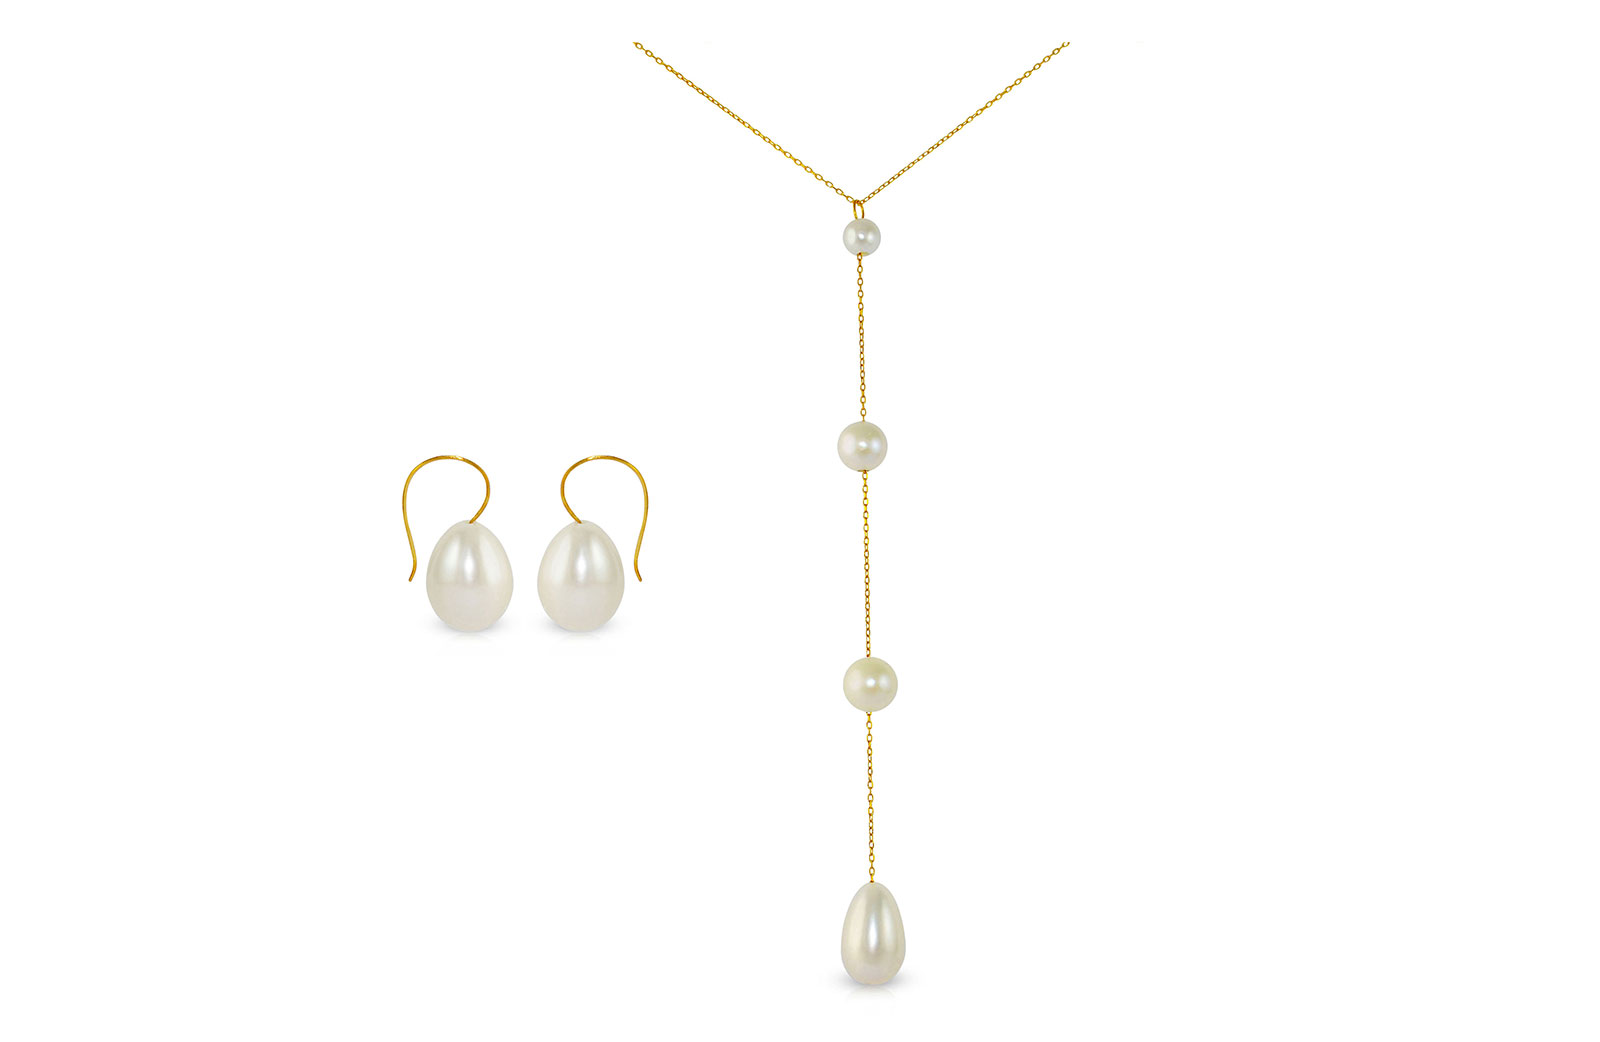 Vera Perla 10K Gold Gradual Built-in with Drop Pearl Necklace & Earrings